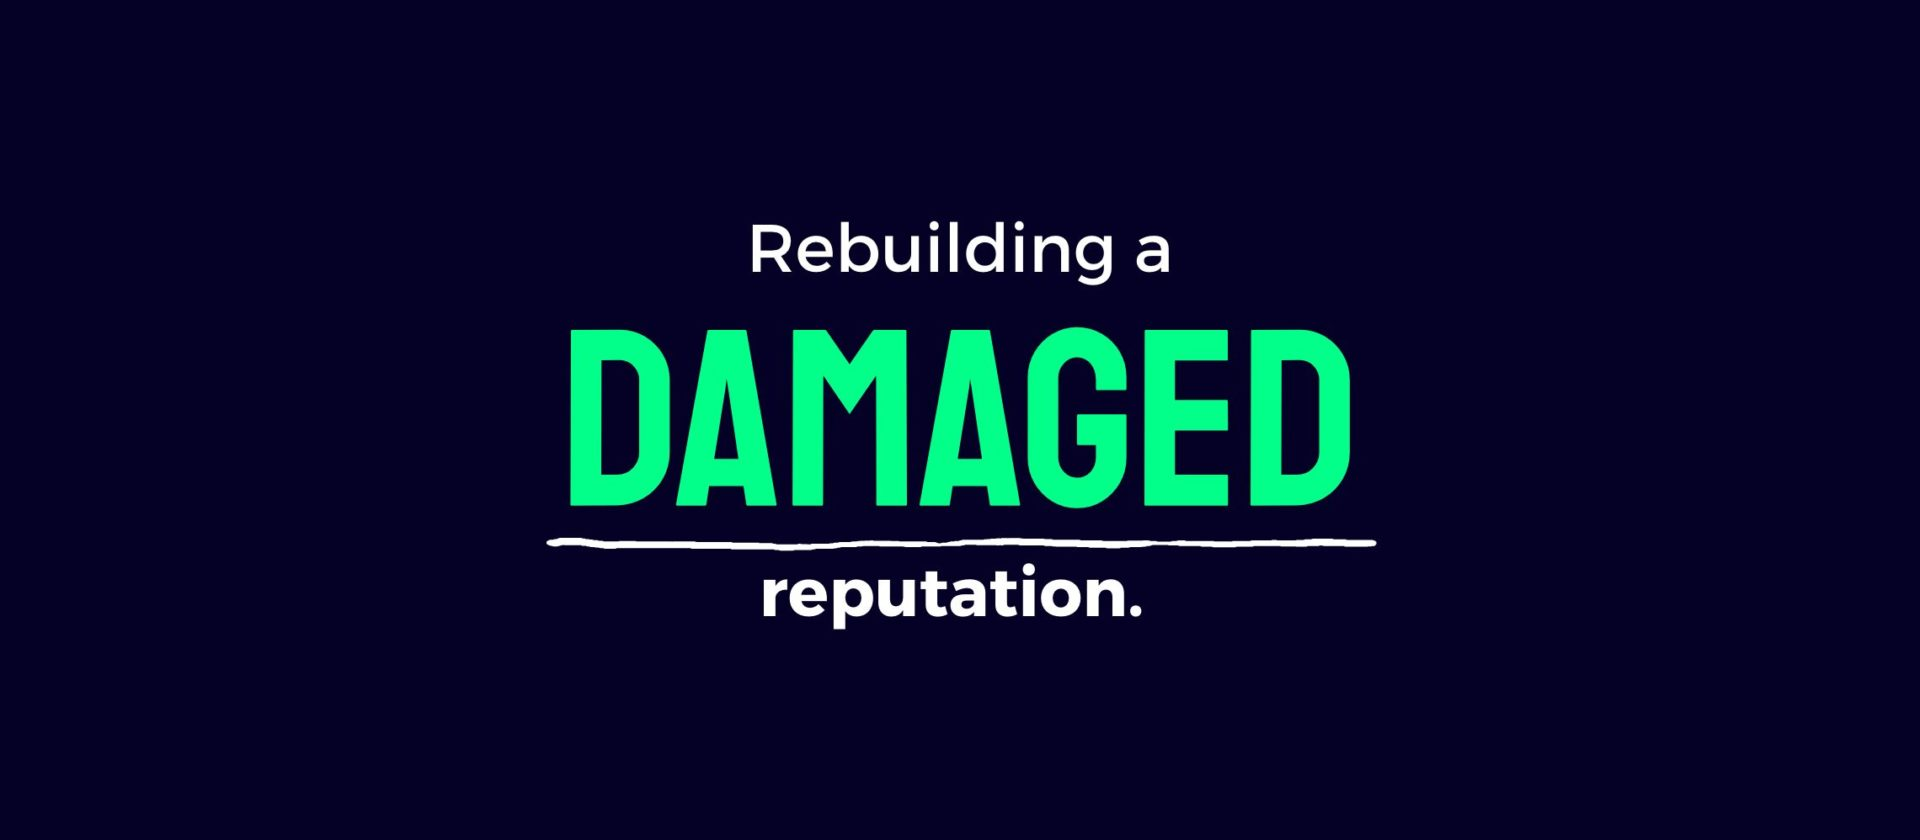 Rebuilding a damaged reputation: your redemption story.